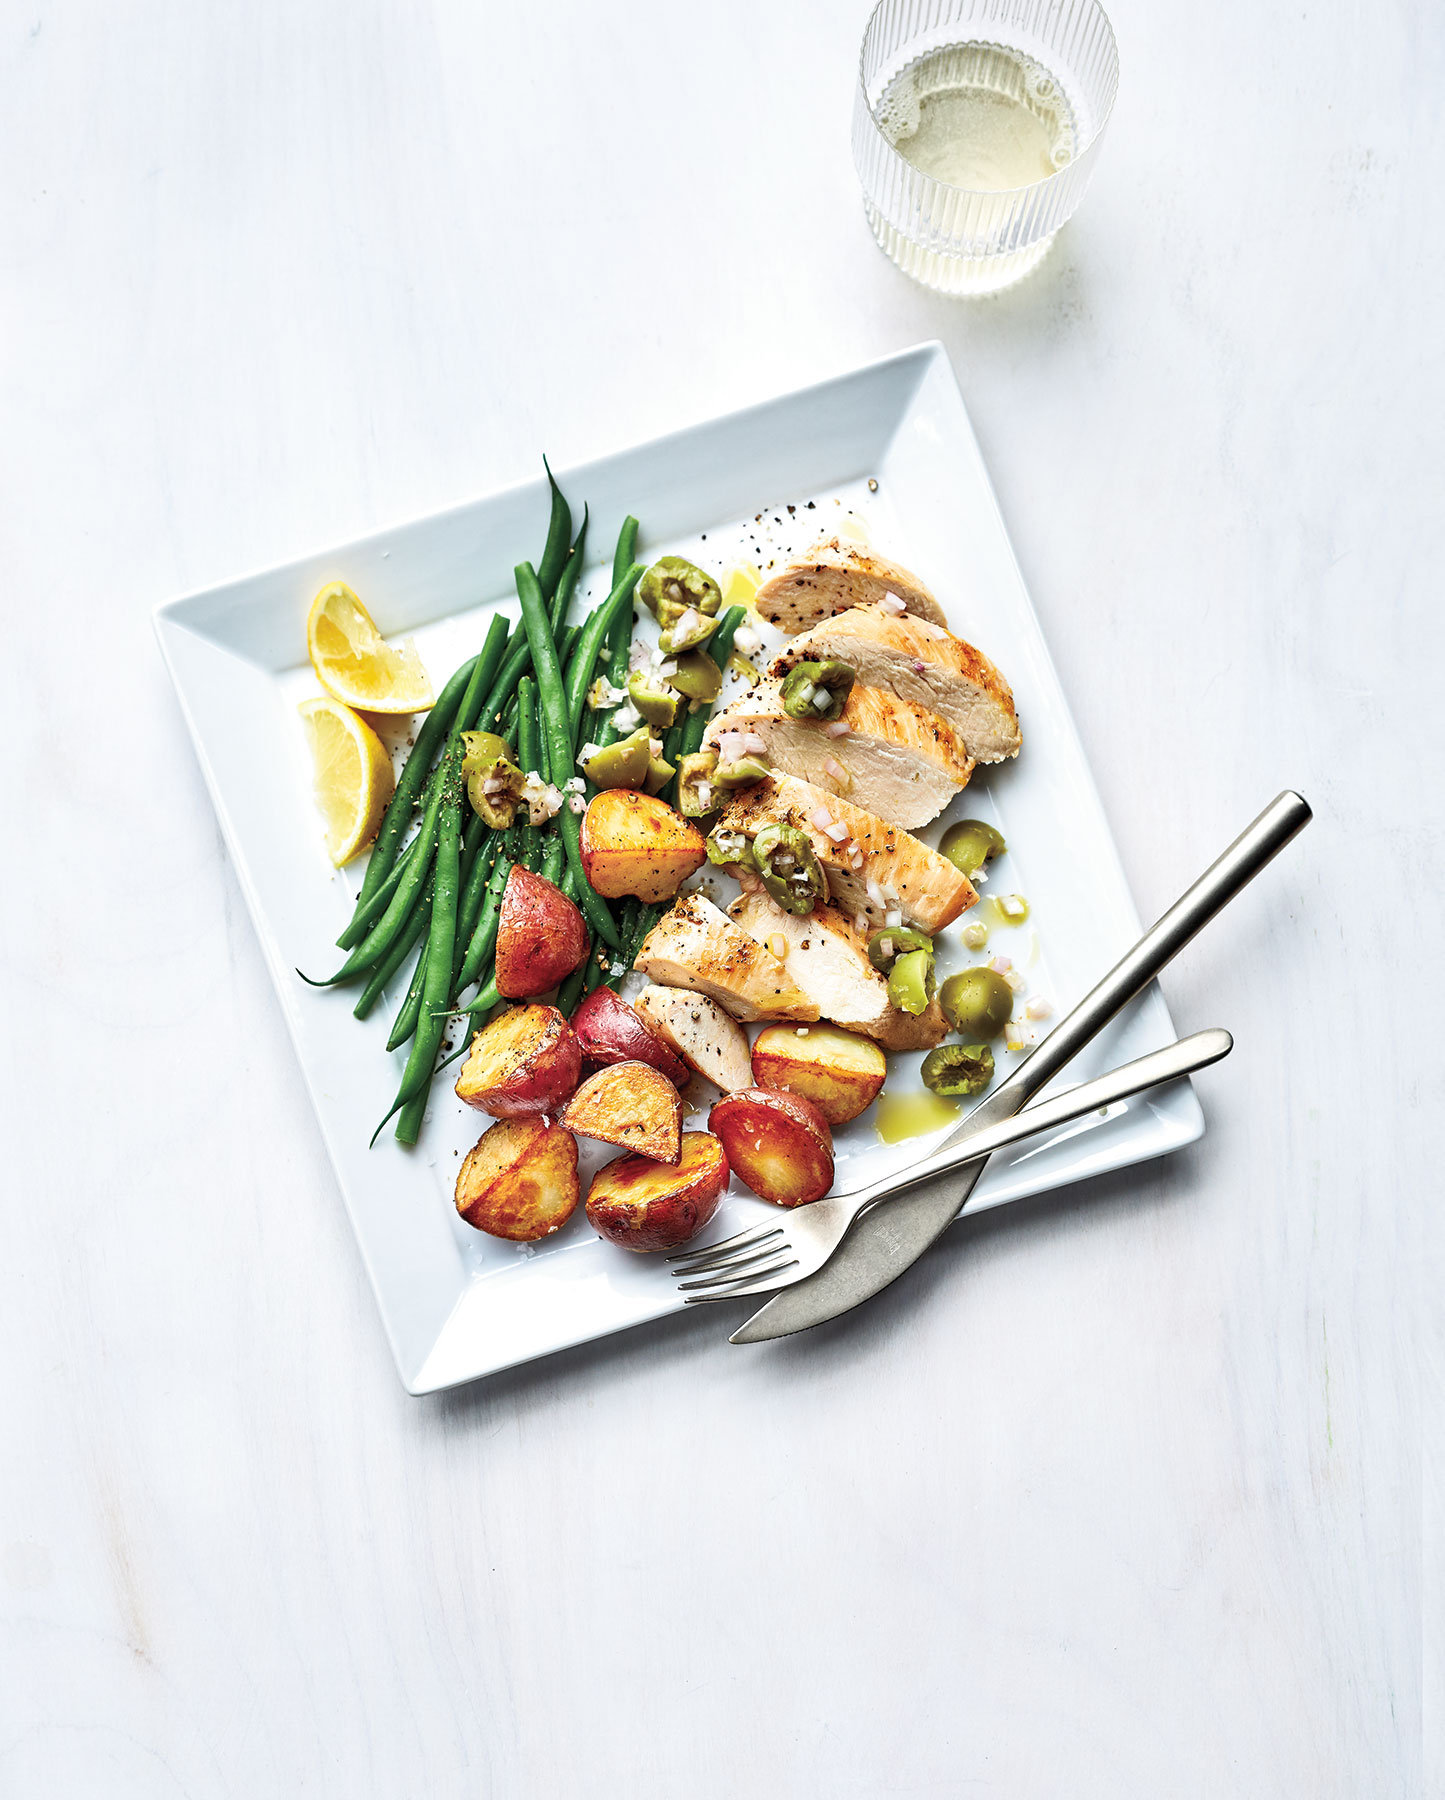 Sheet-Pan Chicken With Potatoes and Green Beans